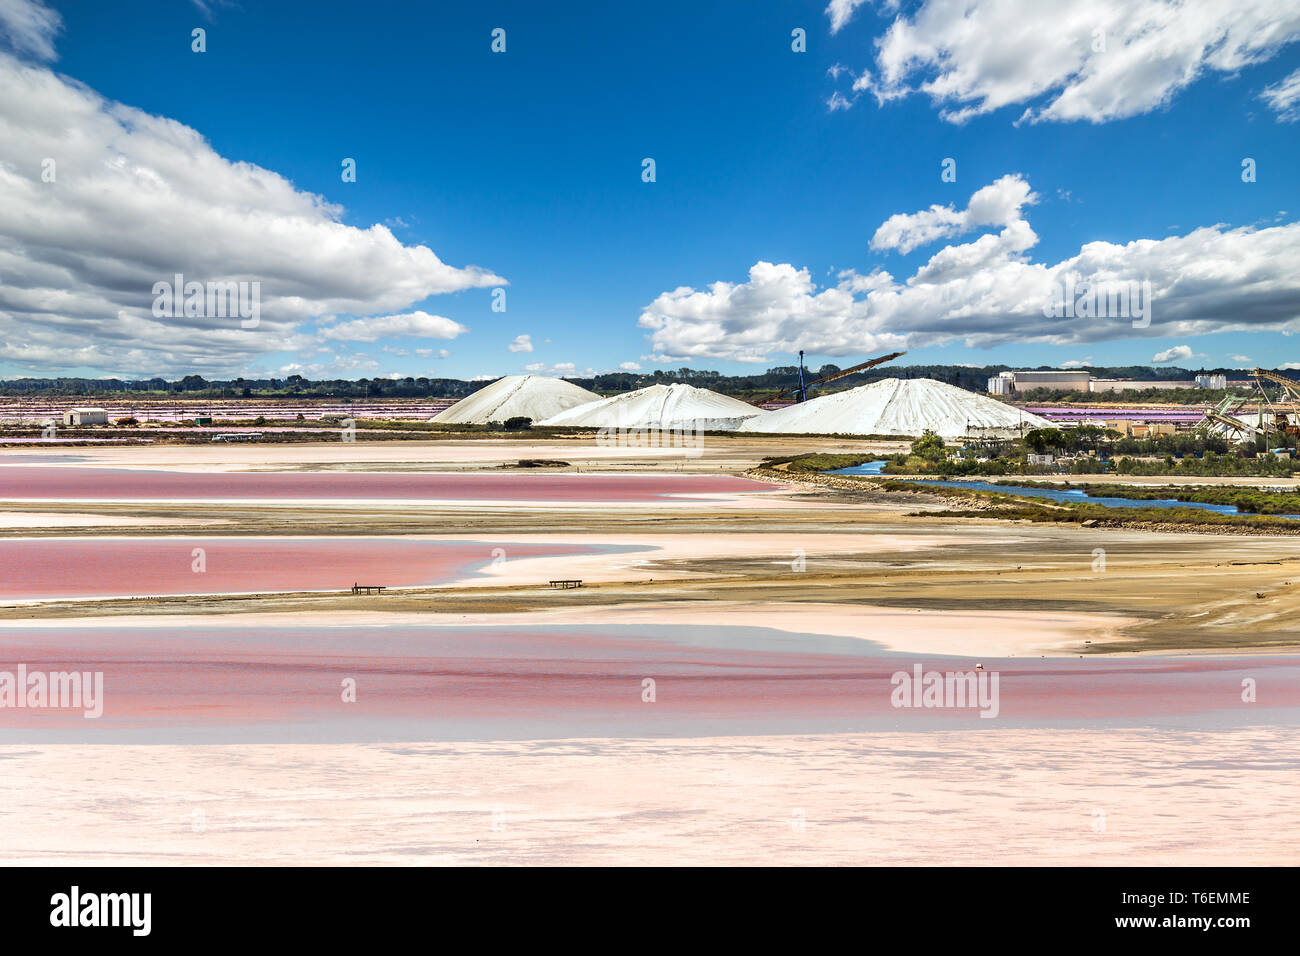 Salt production in the Camargue. - Stock Image